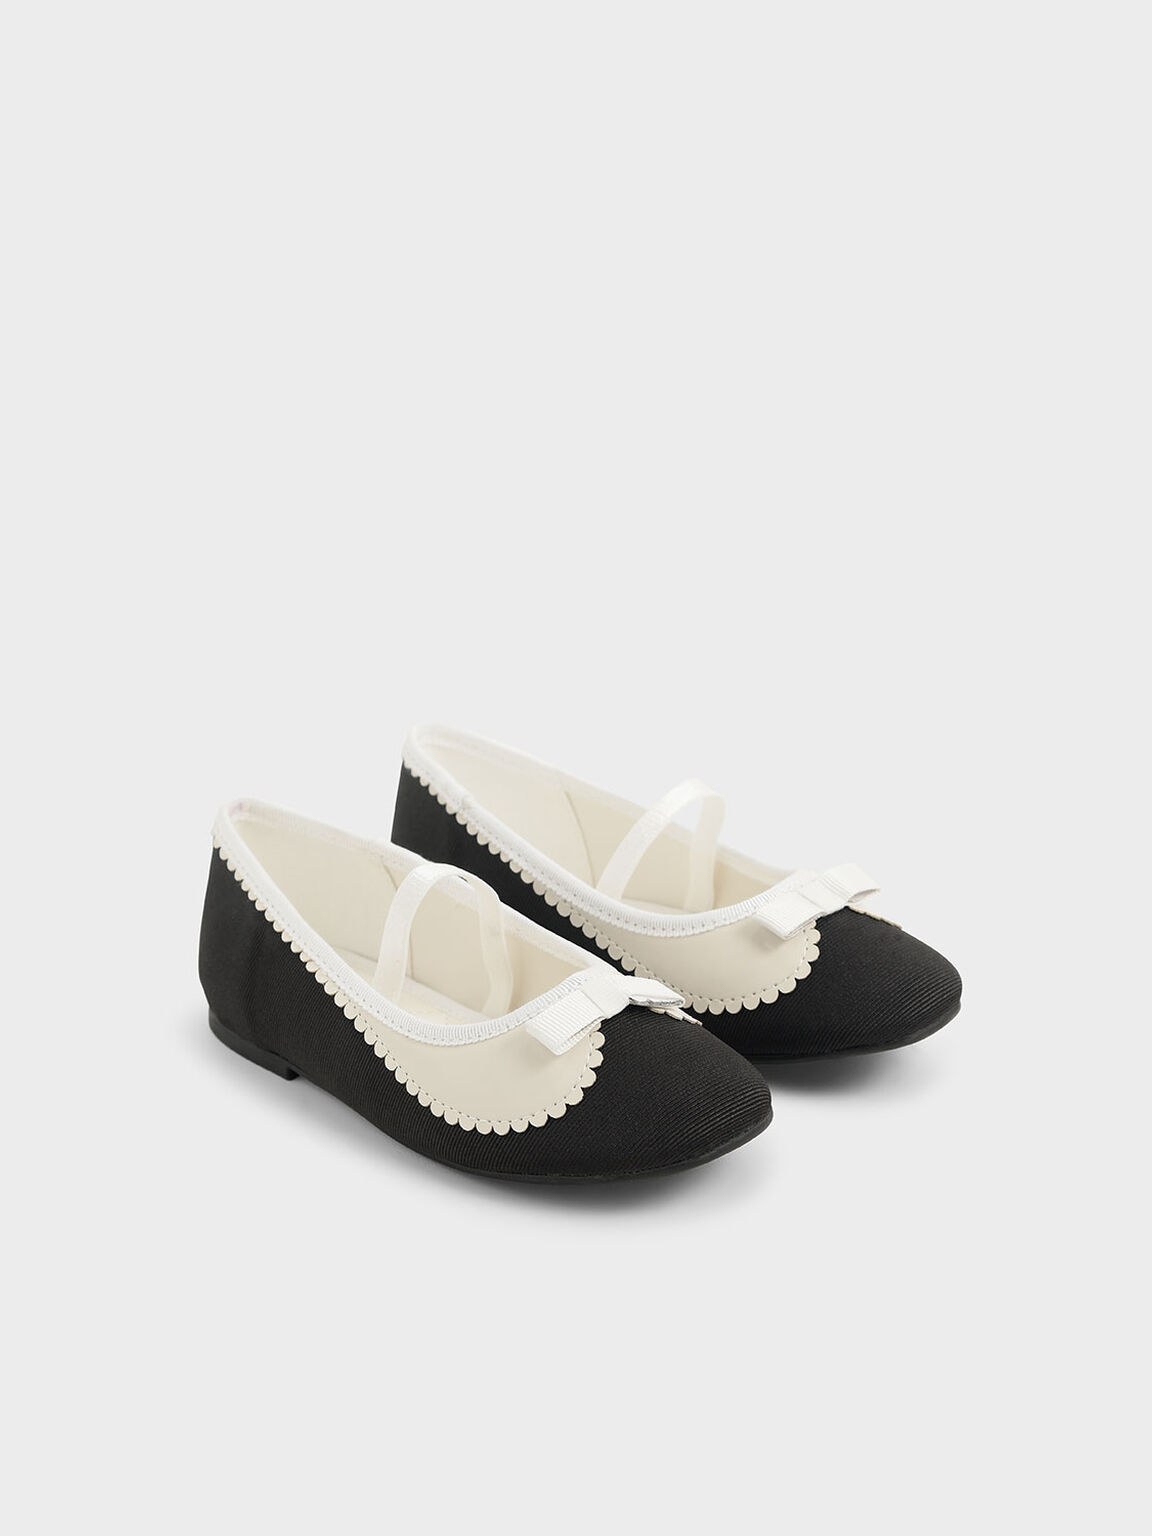 Girls' Grosgrain Scallop Trim Ballerina Flats, Black, hi-res